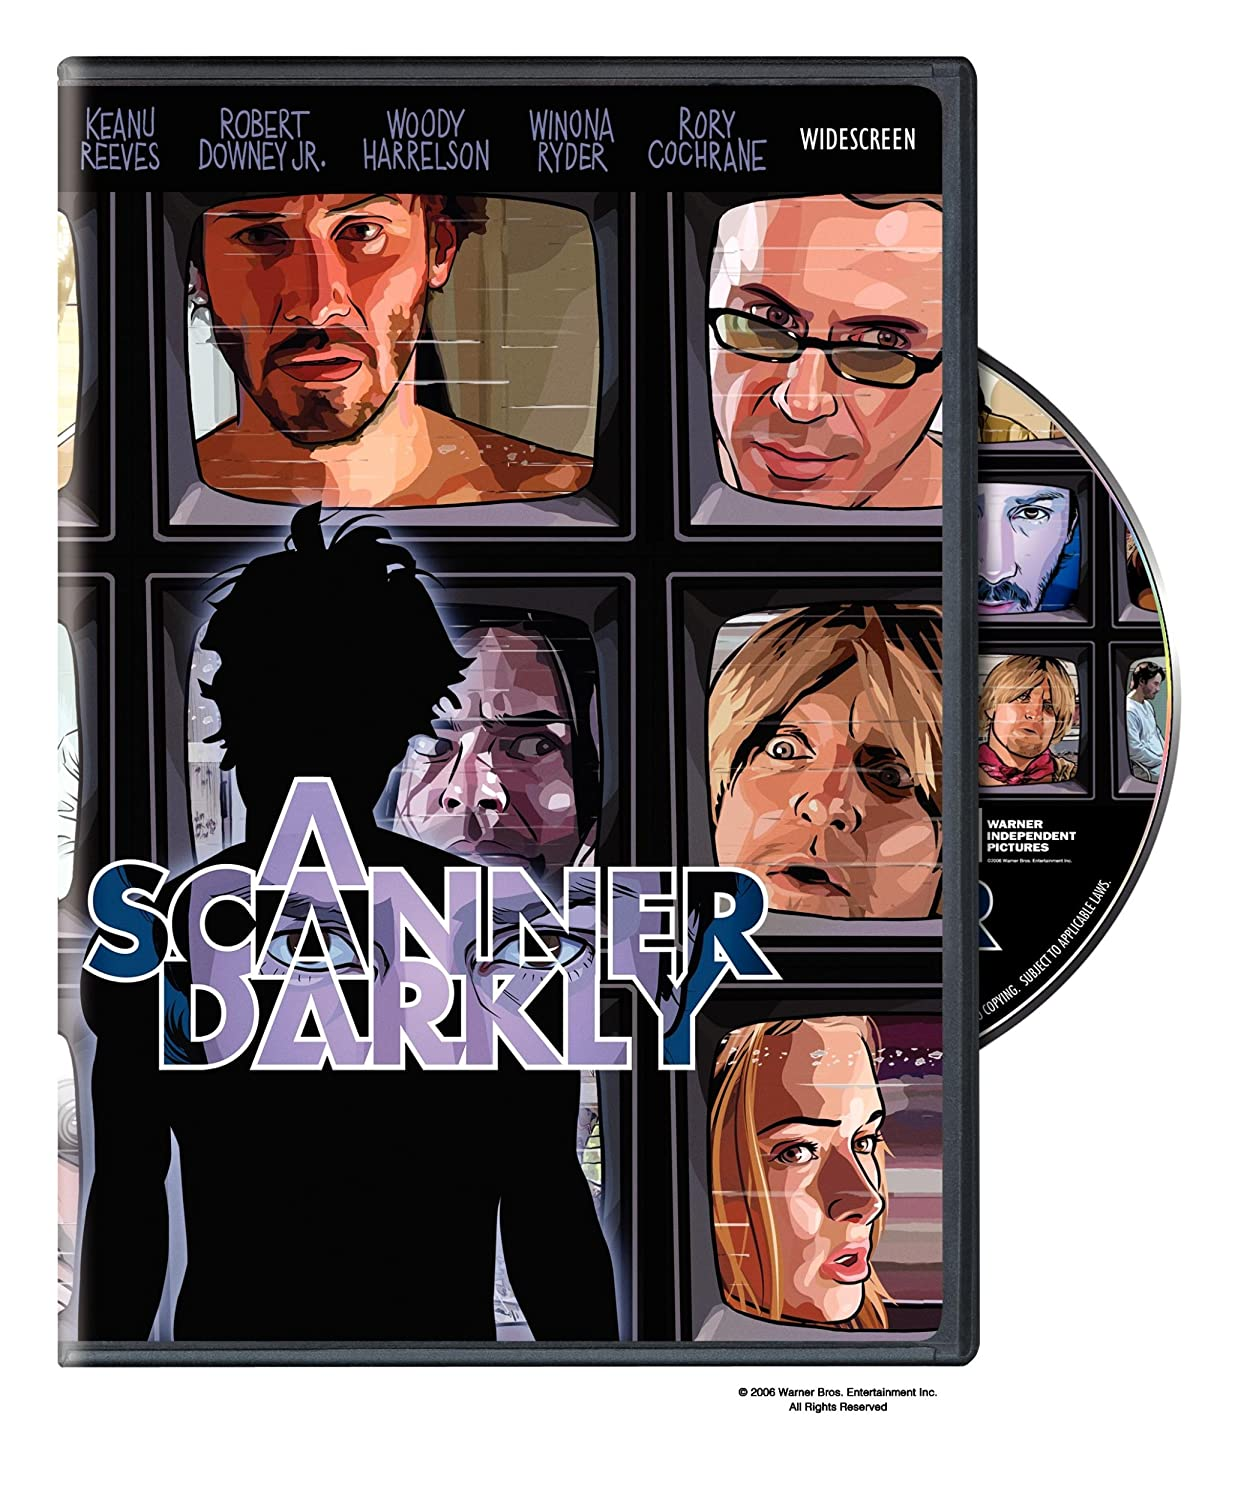 subtitulos a scanner darkly